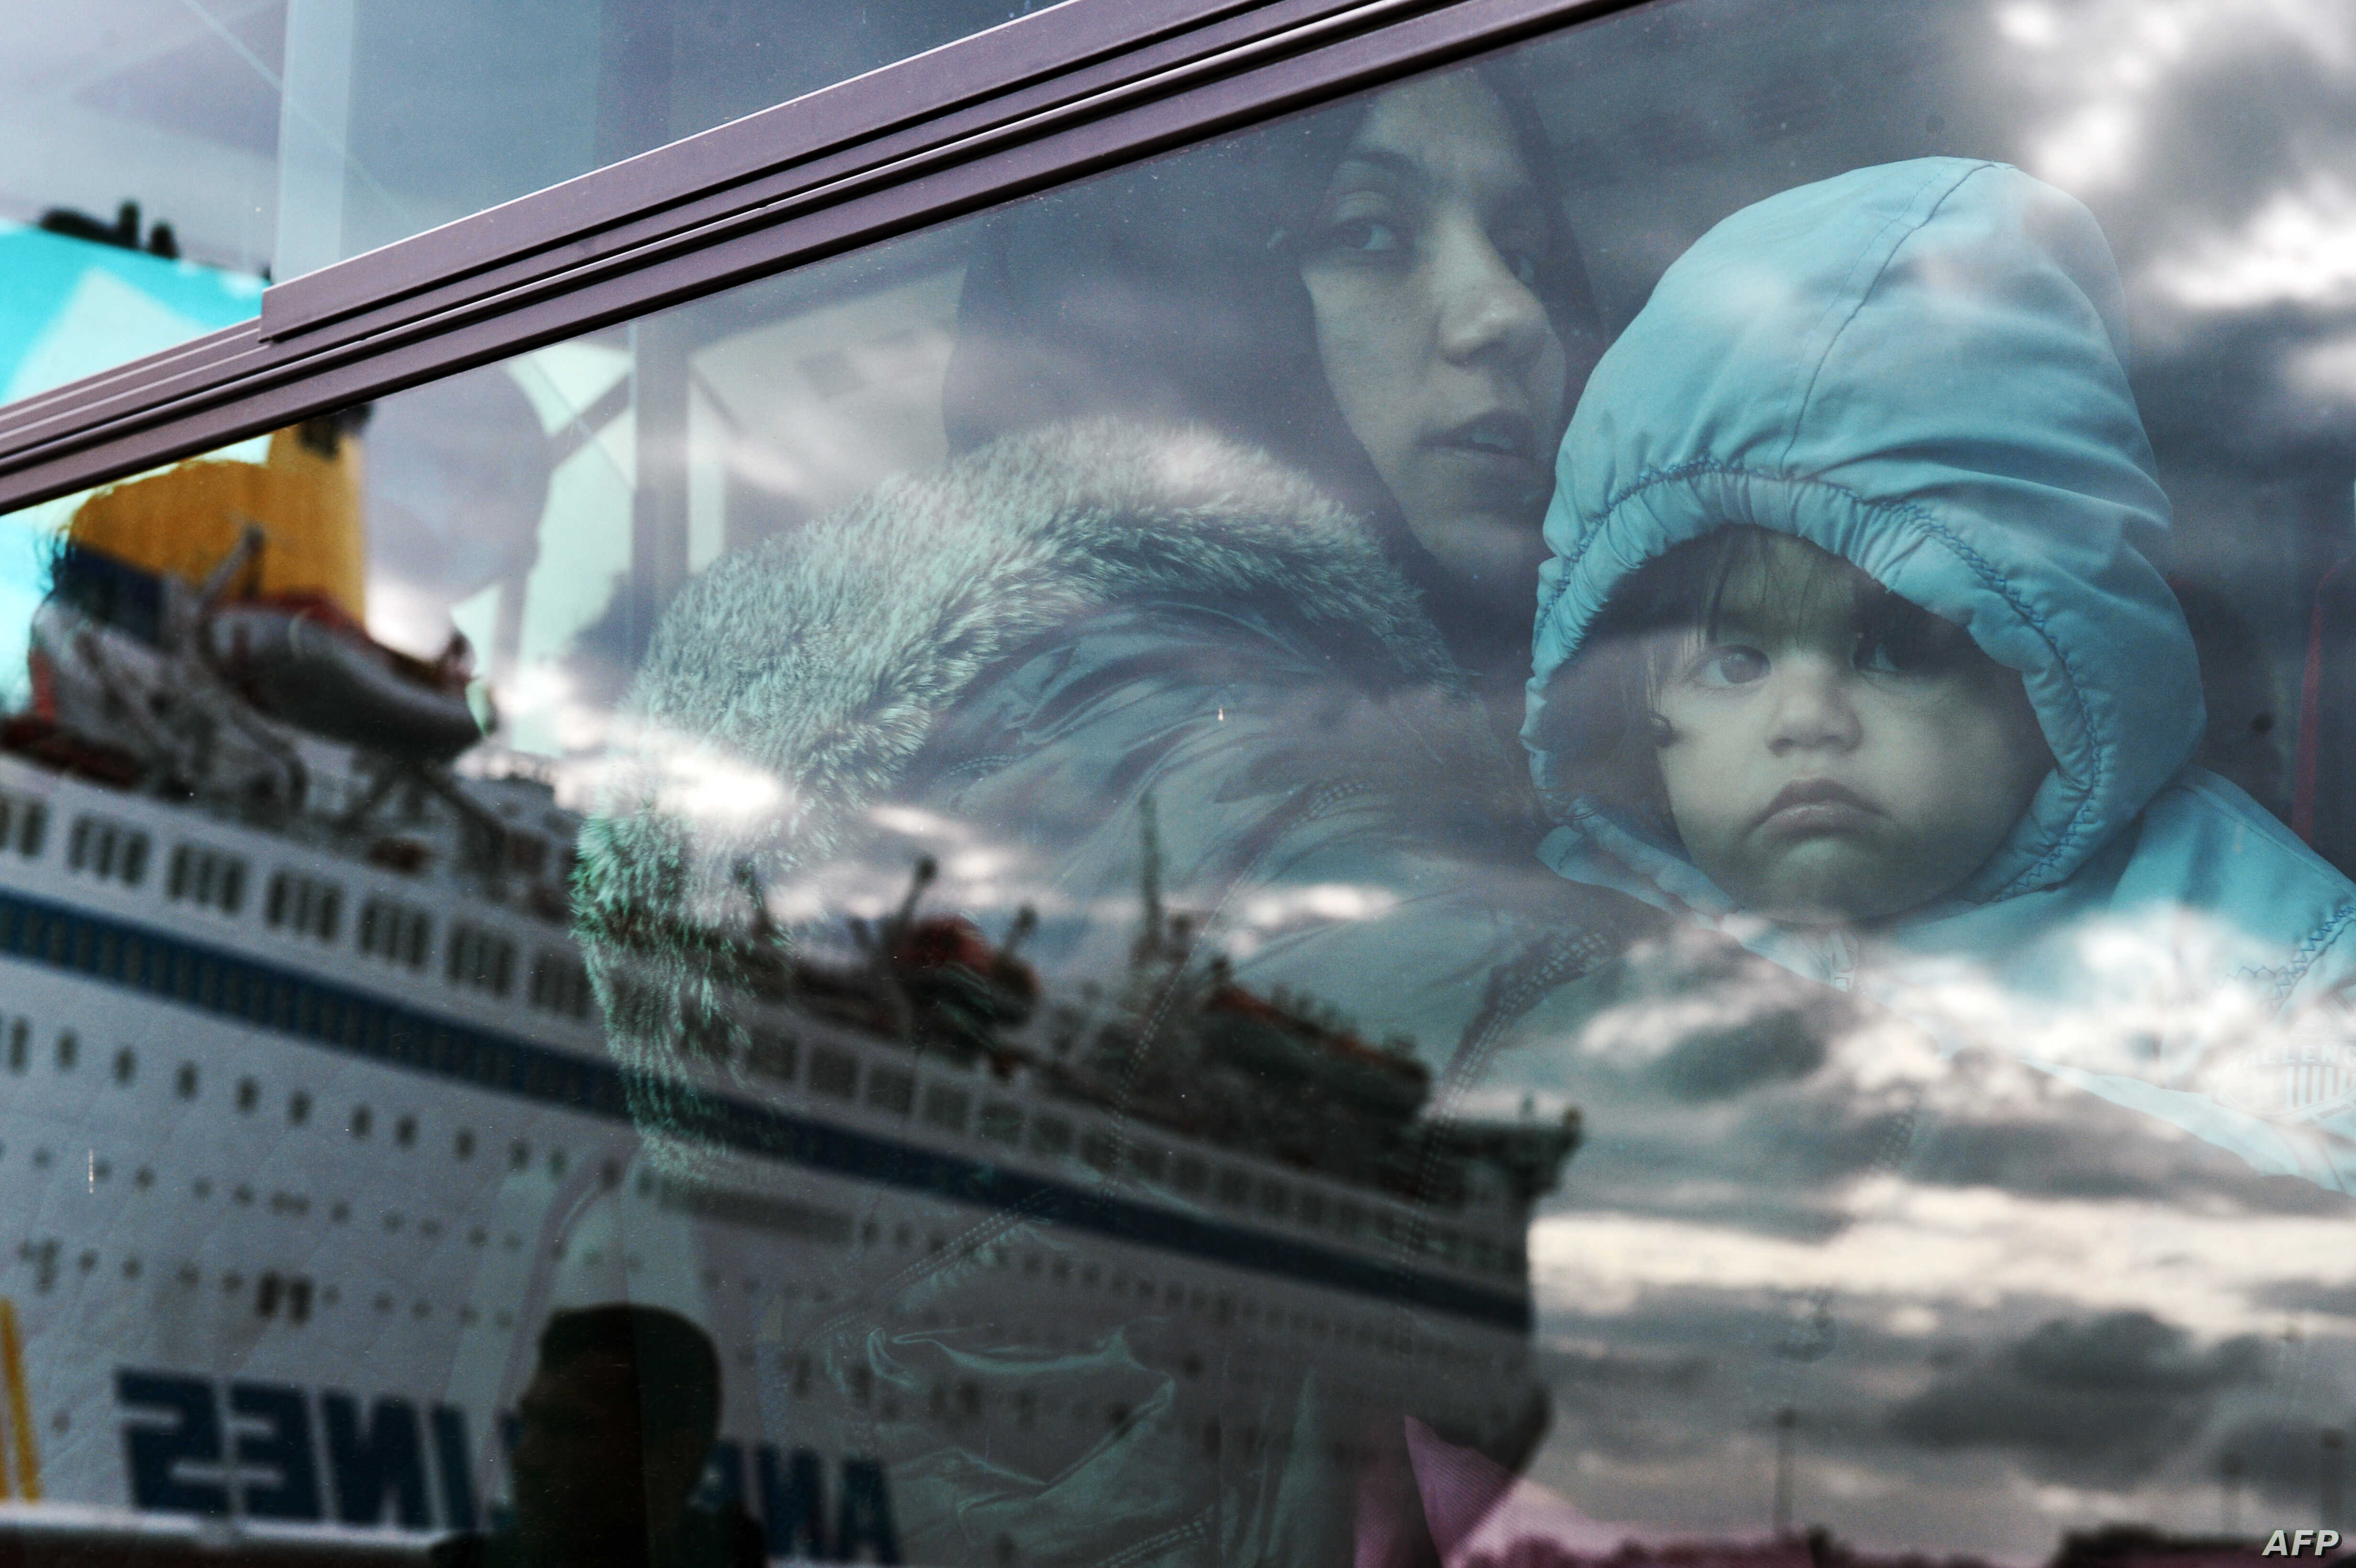 A woman and a child peer from a bus, after migrants and refugees disembarked  from a government chartered ferry, seen in reflection, in the port of Piraeus in Athens on Nov. 27, 2015.